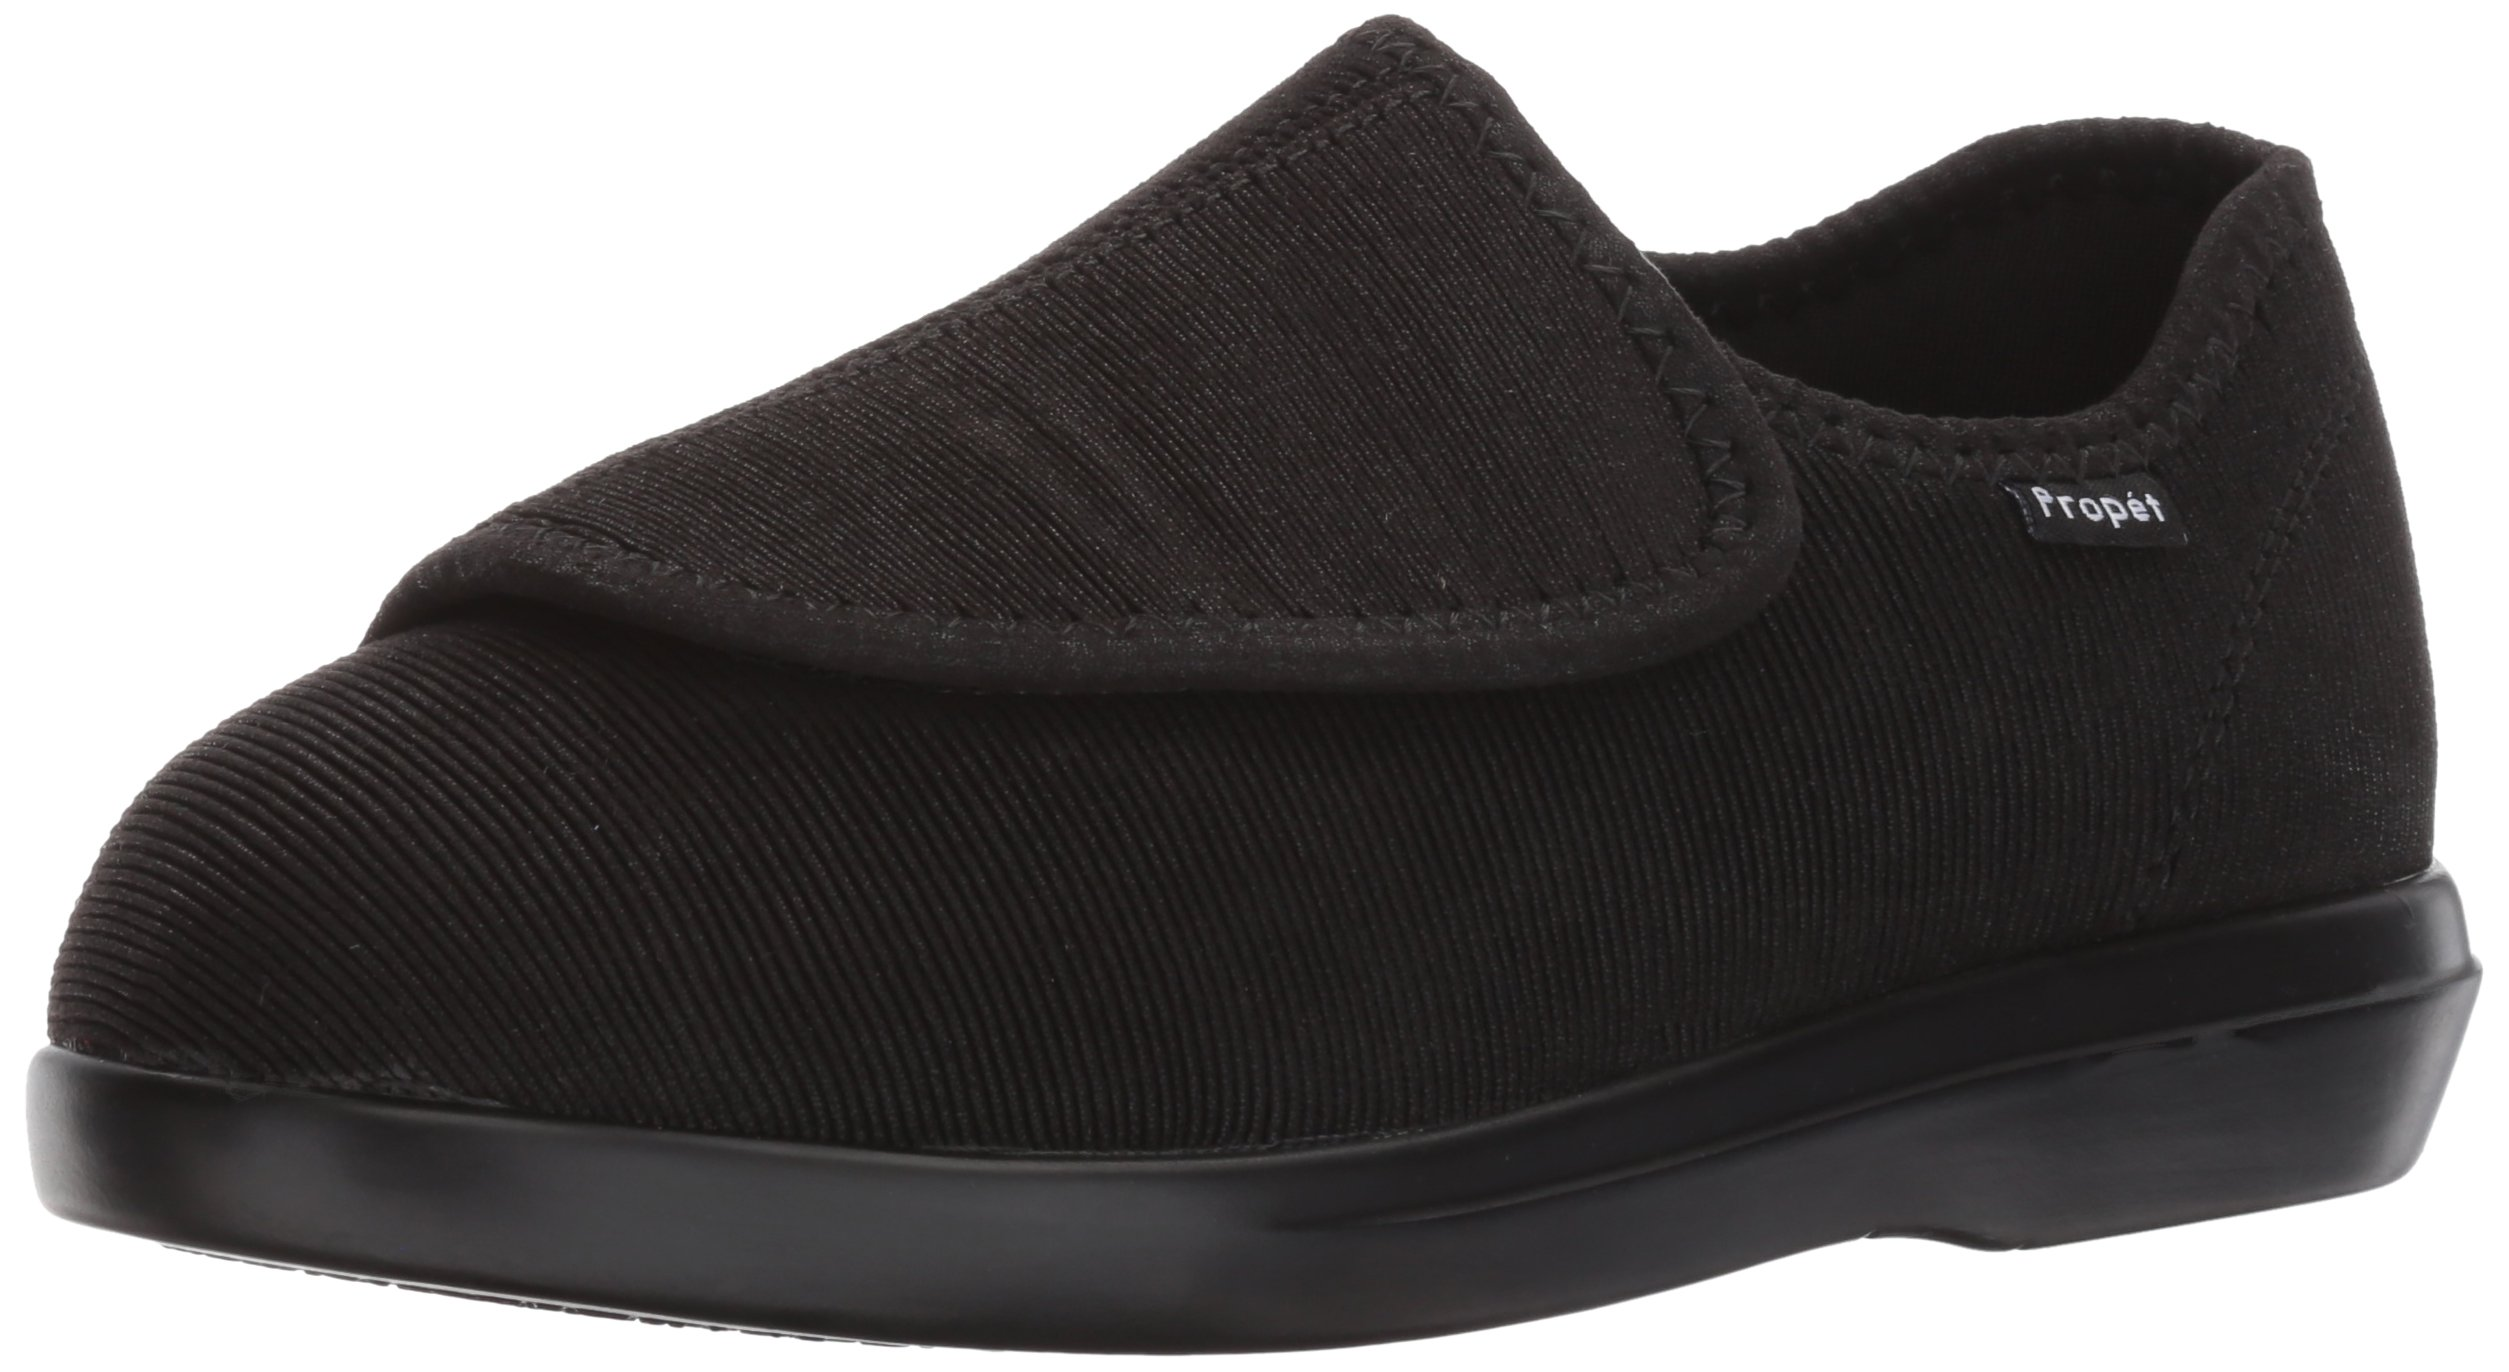 Propet Men's Cush N Foot Slipper, Black Corduroy, 10 3E US by Propét